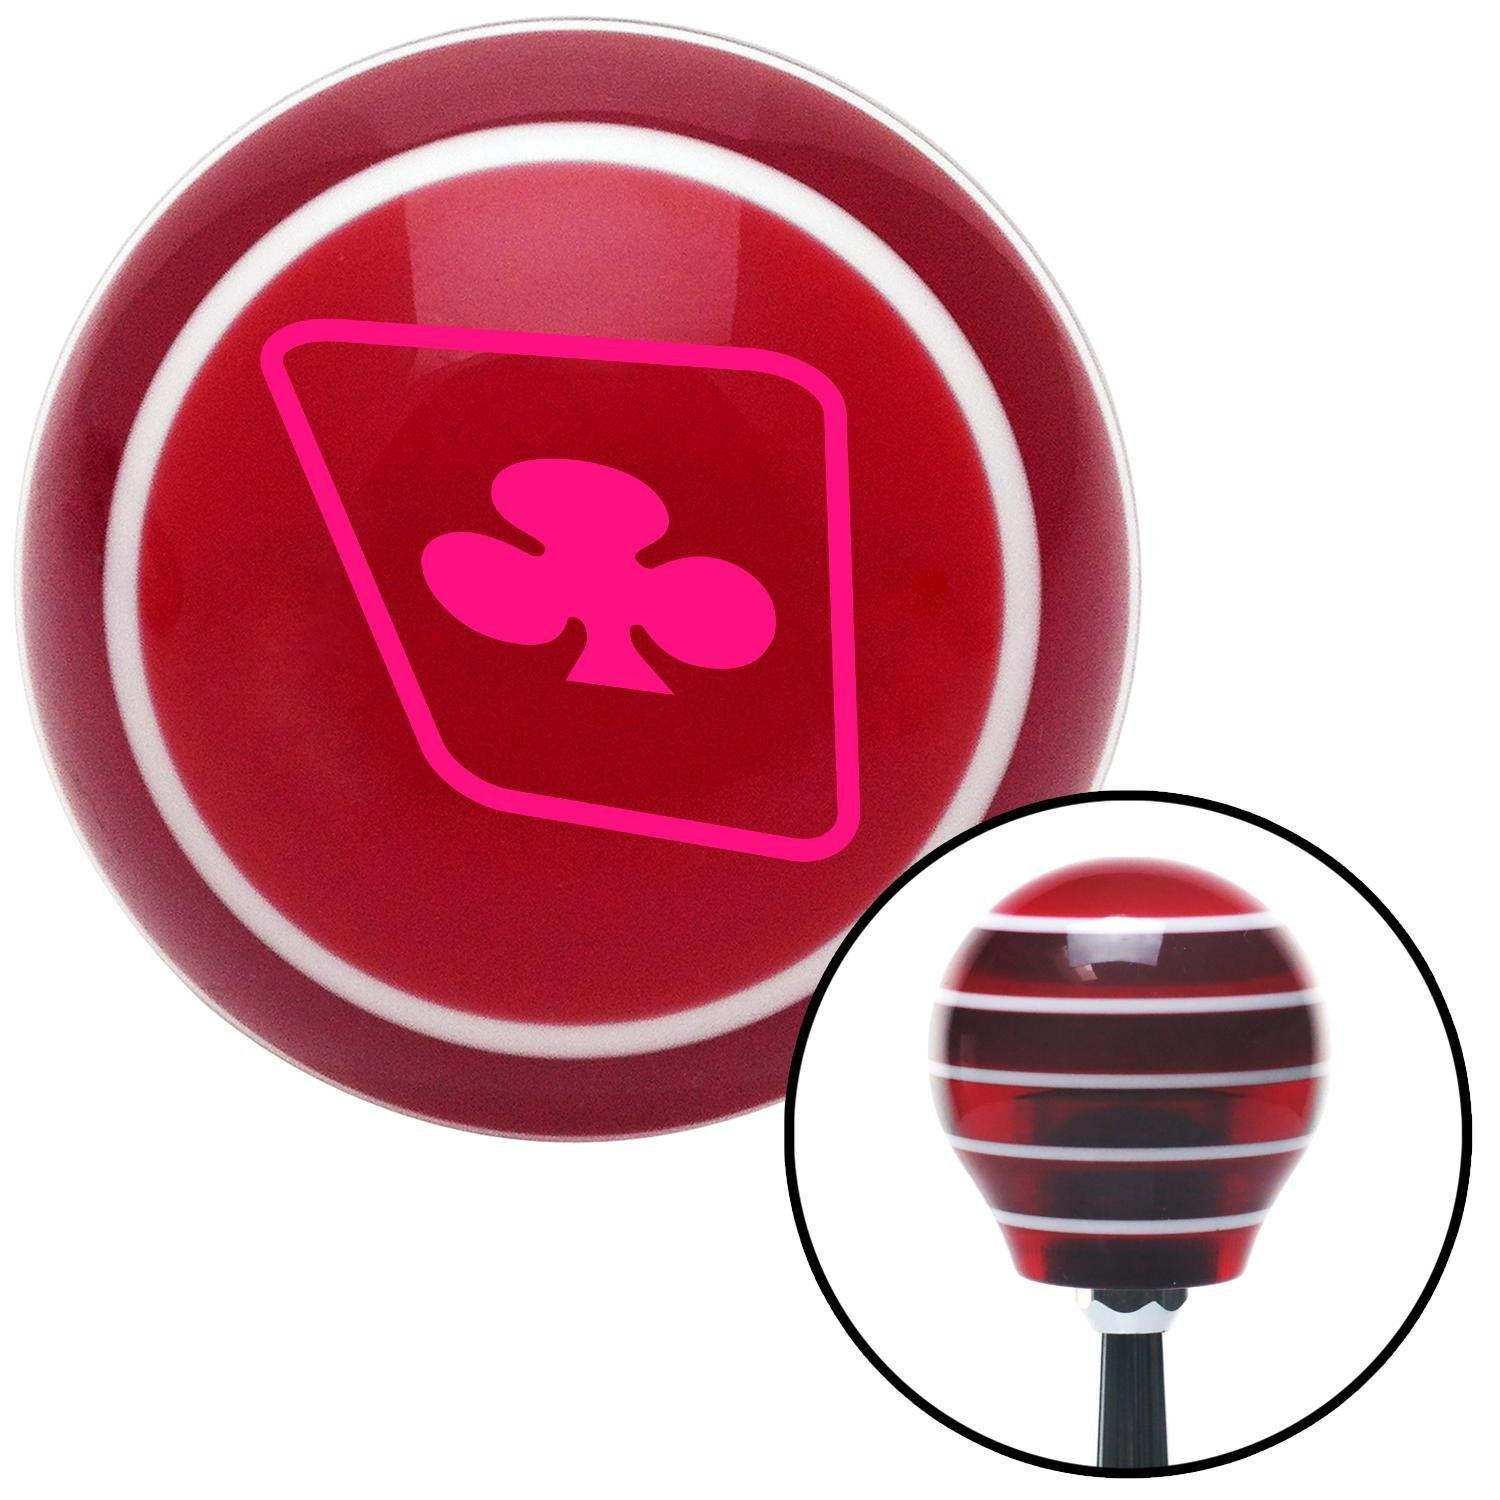 Pink Clubs on a Card American Shifter 112661 Red Stripe Shift Knob with M16 x 1.5 Insert